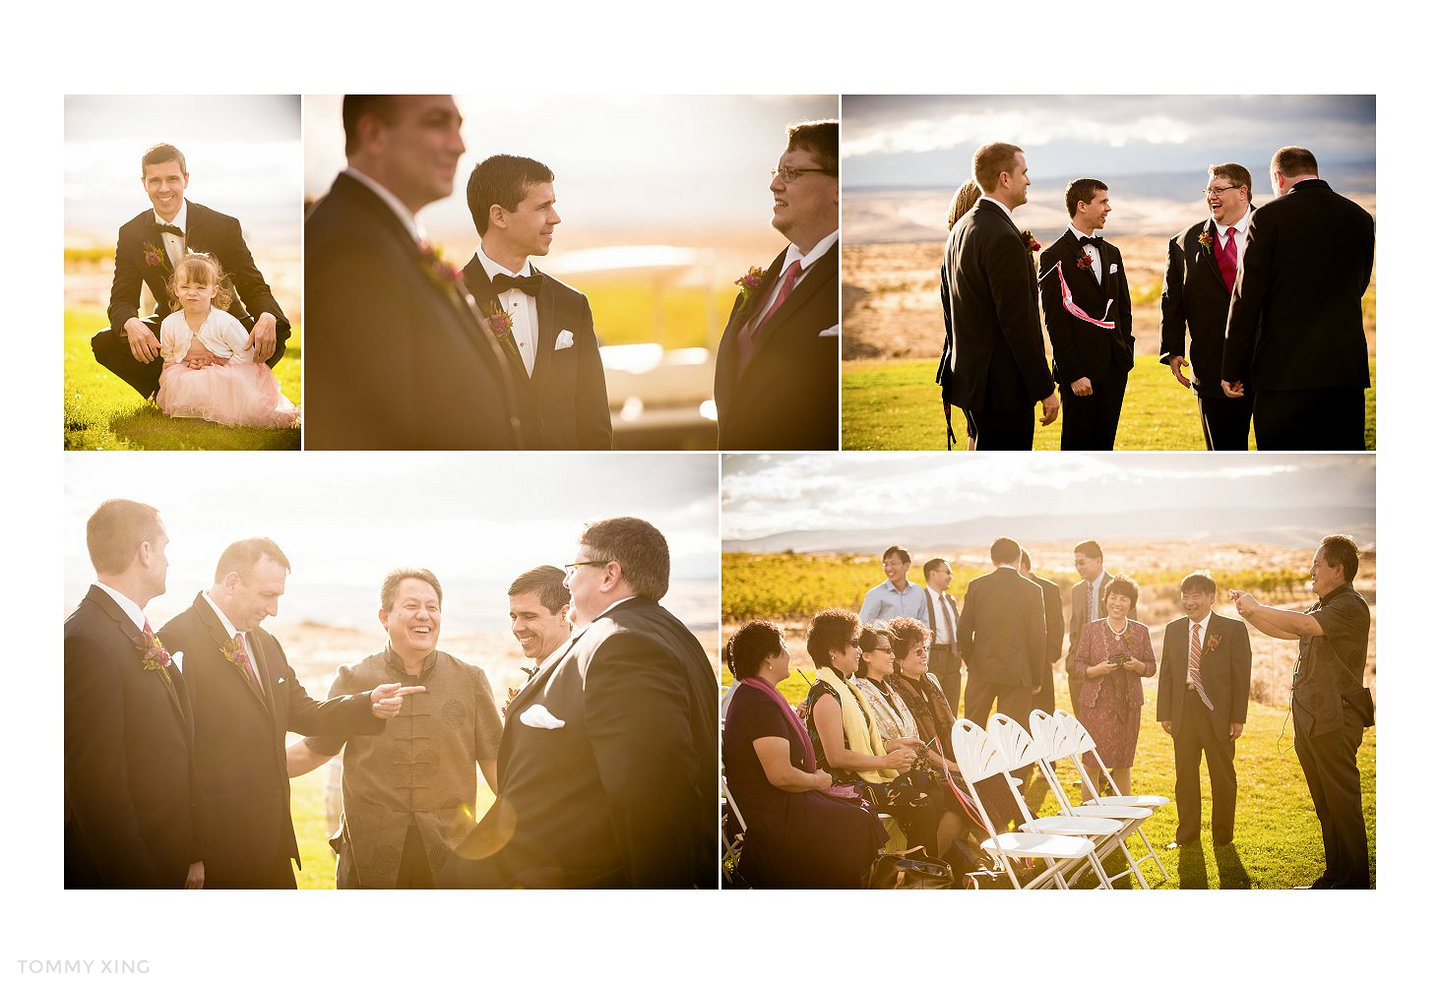 Tommy Xing Photography Seattle CAVE B ESTATE WINERY wedding 西雅图酒庄婚礼 16.jpg